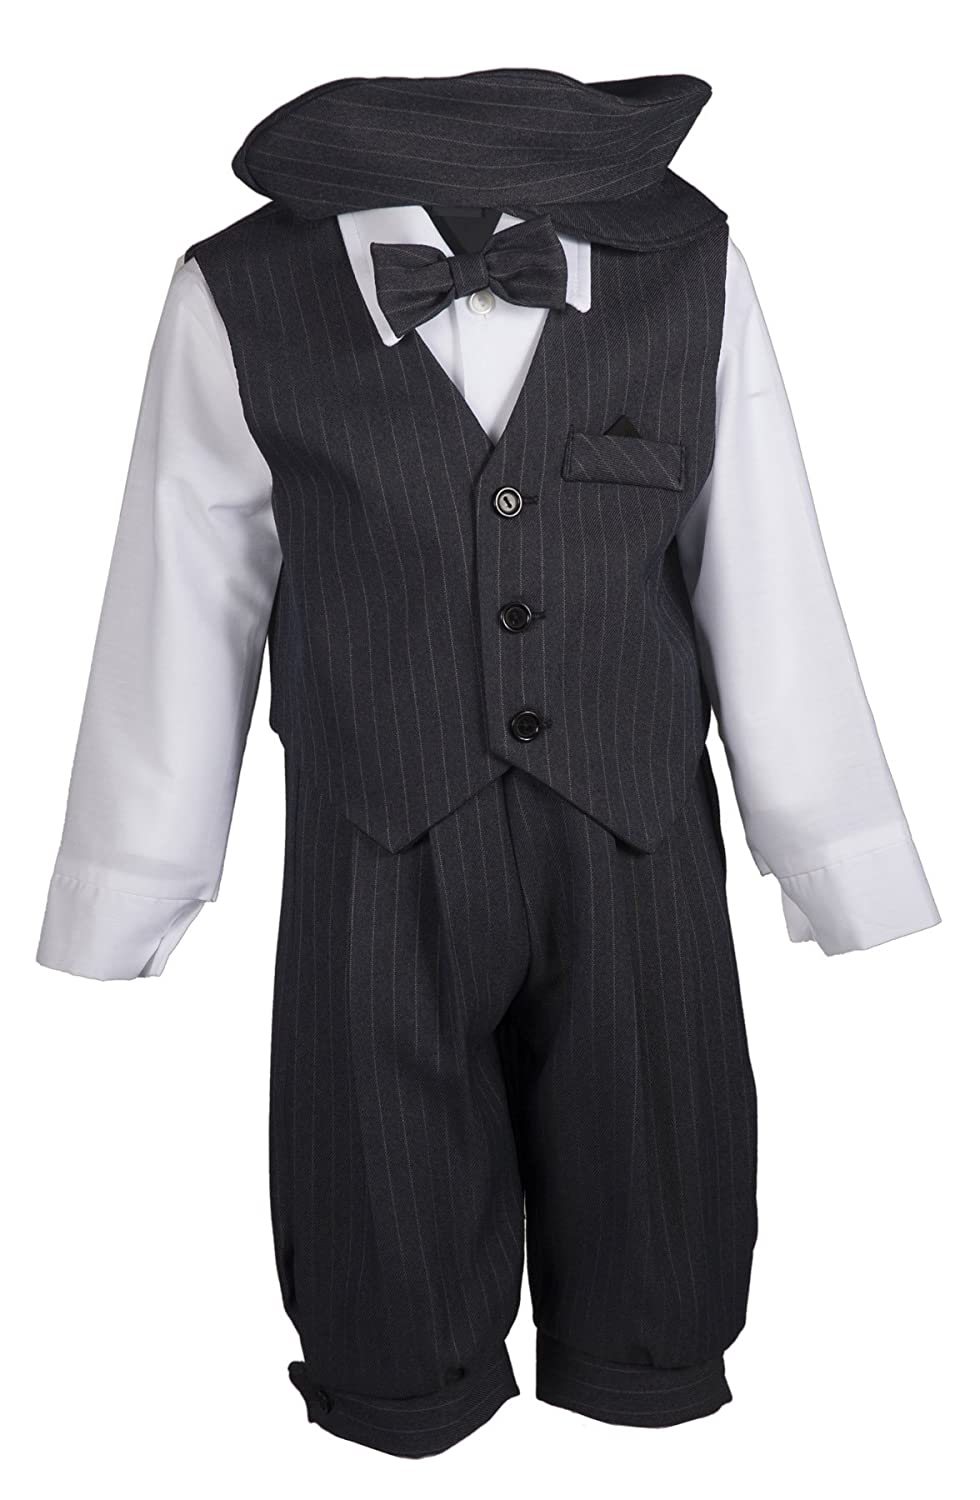 1930s Childrens Fashion: Girls, Boys, Toddler, Baby Costumes Boys Grey Pinstripe Knicker Set with Vest in Baby Toddler & Boys Sizes $37.95 AT vintagedancer.com